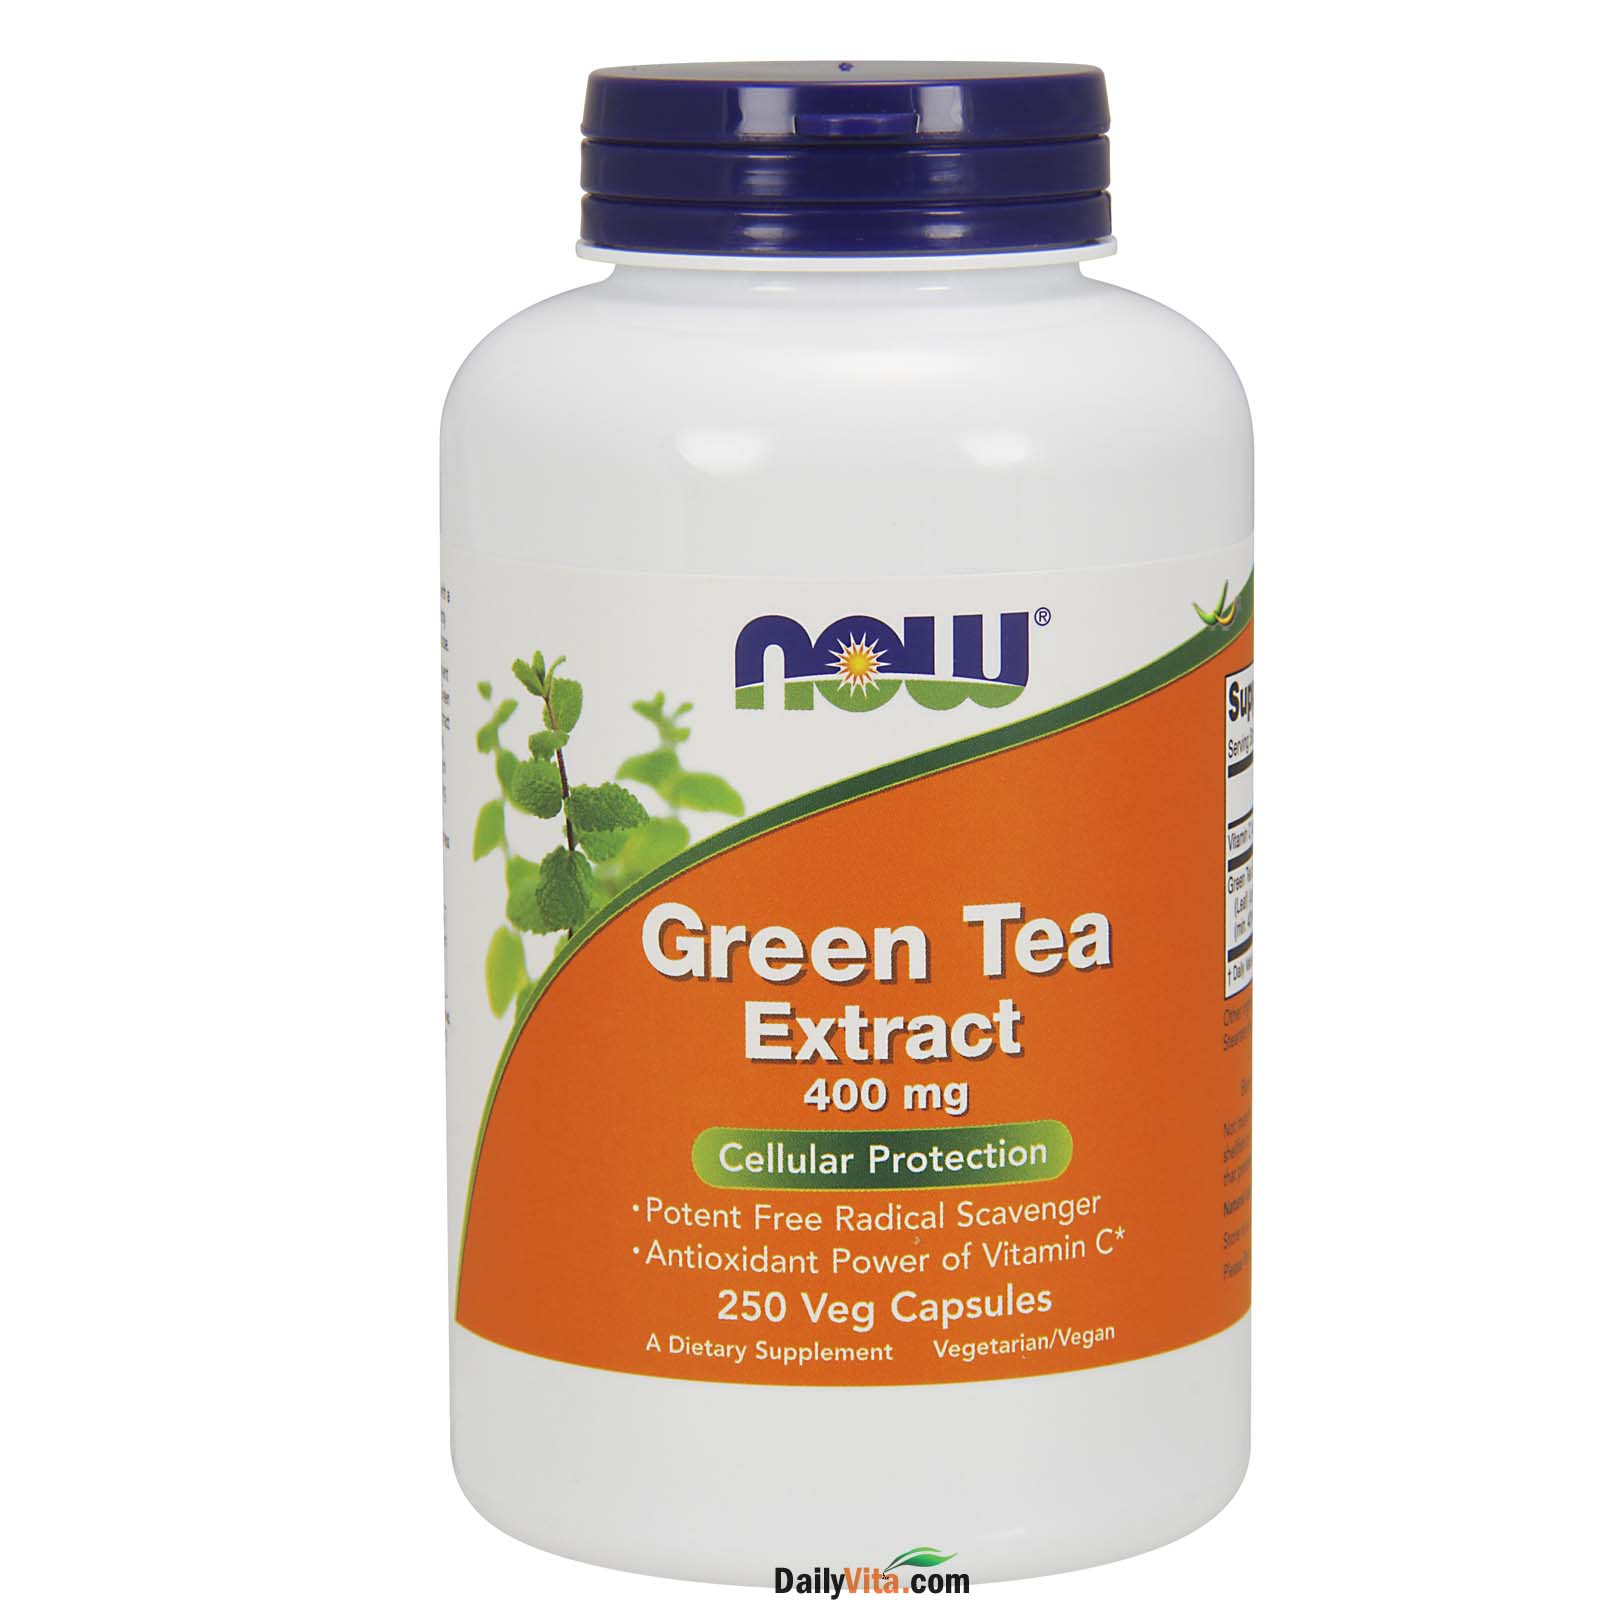 NOW® Green Tea Extract 400 mg - 250 Caps